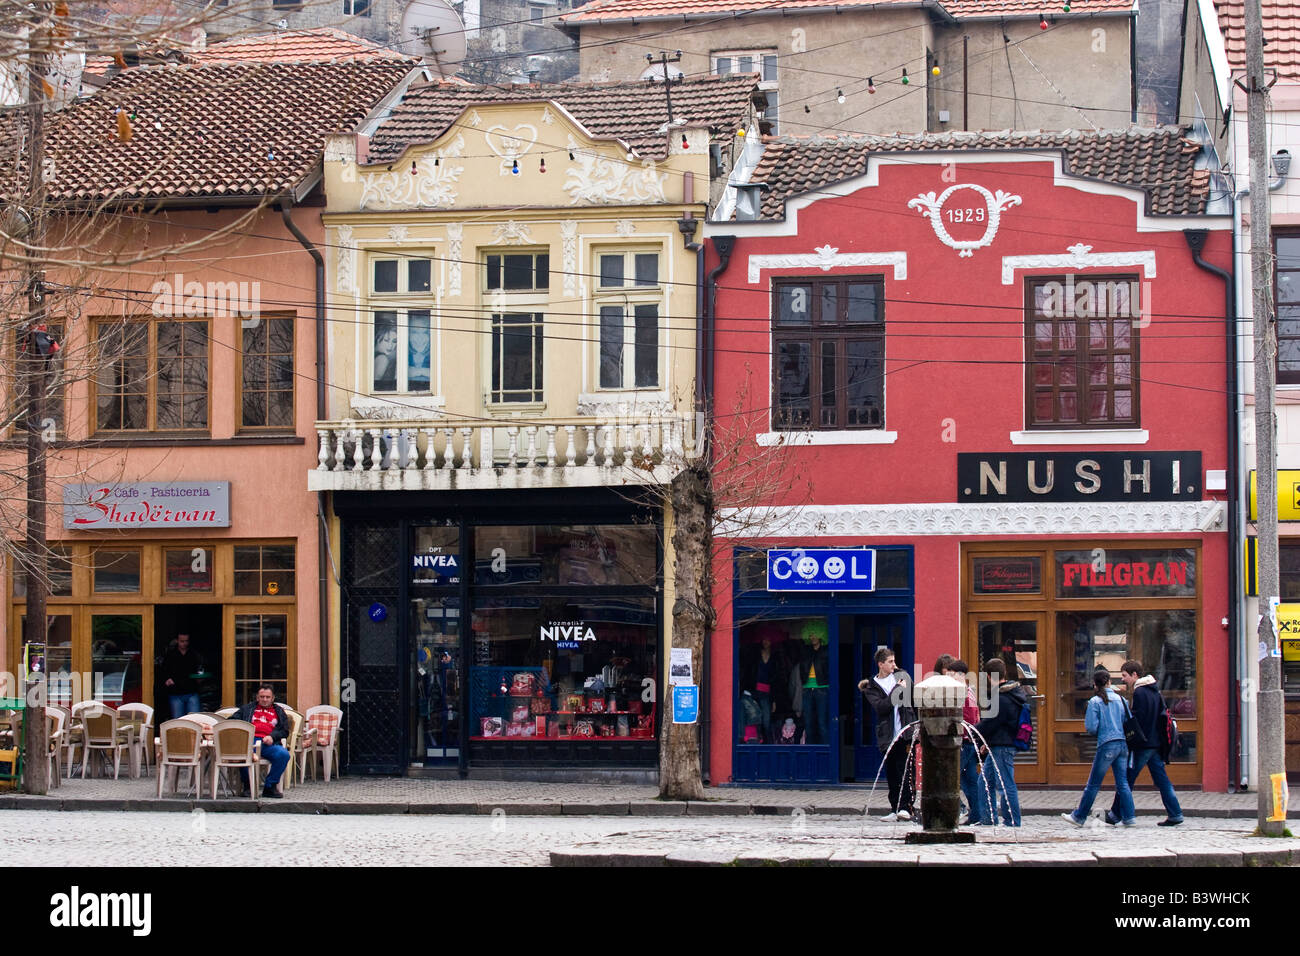 Restored old houses in the center of Prizren, Kosovo. Prizren is Kosovo's historical and cultural capital. - Stock Image